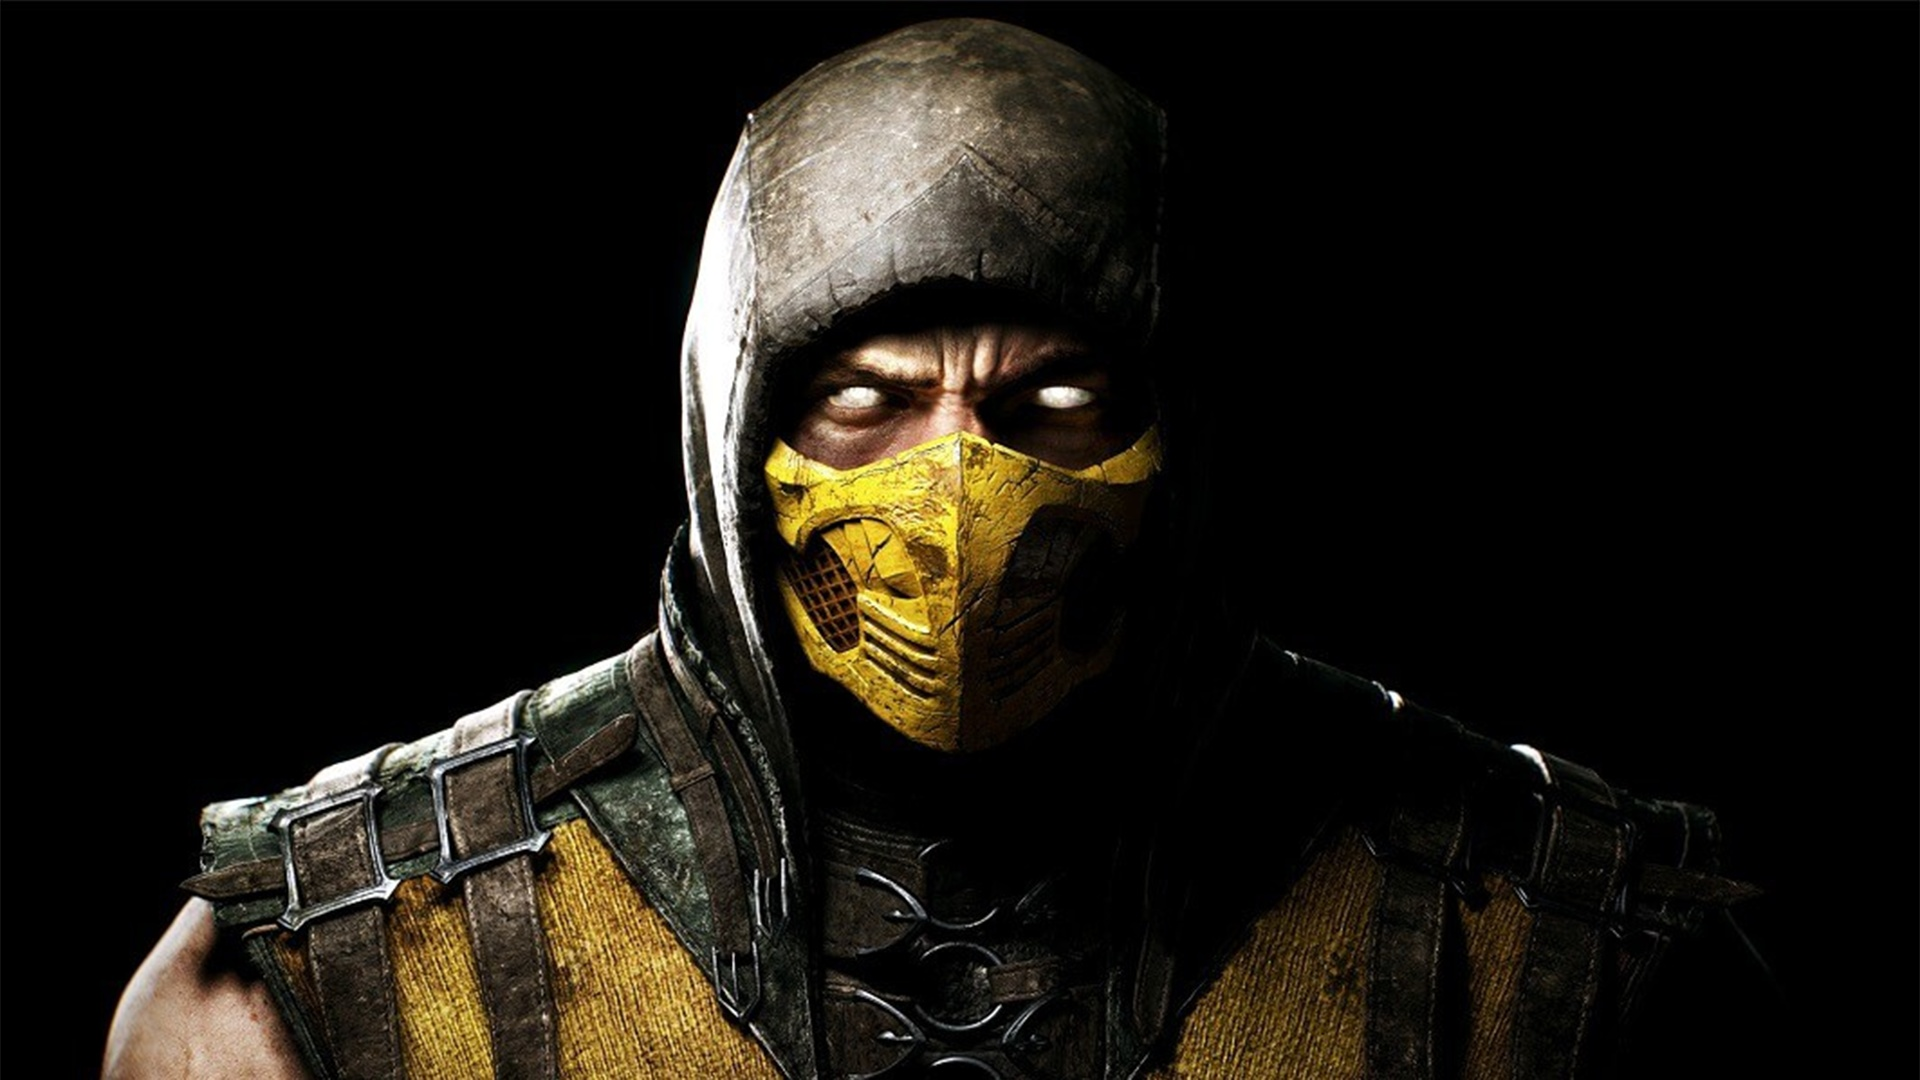 Mortal Kombat 11 Kollector S Edition Comes With Life Size Scorpion Mask Steemit